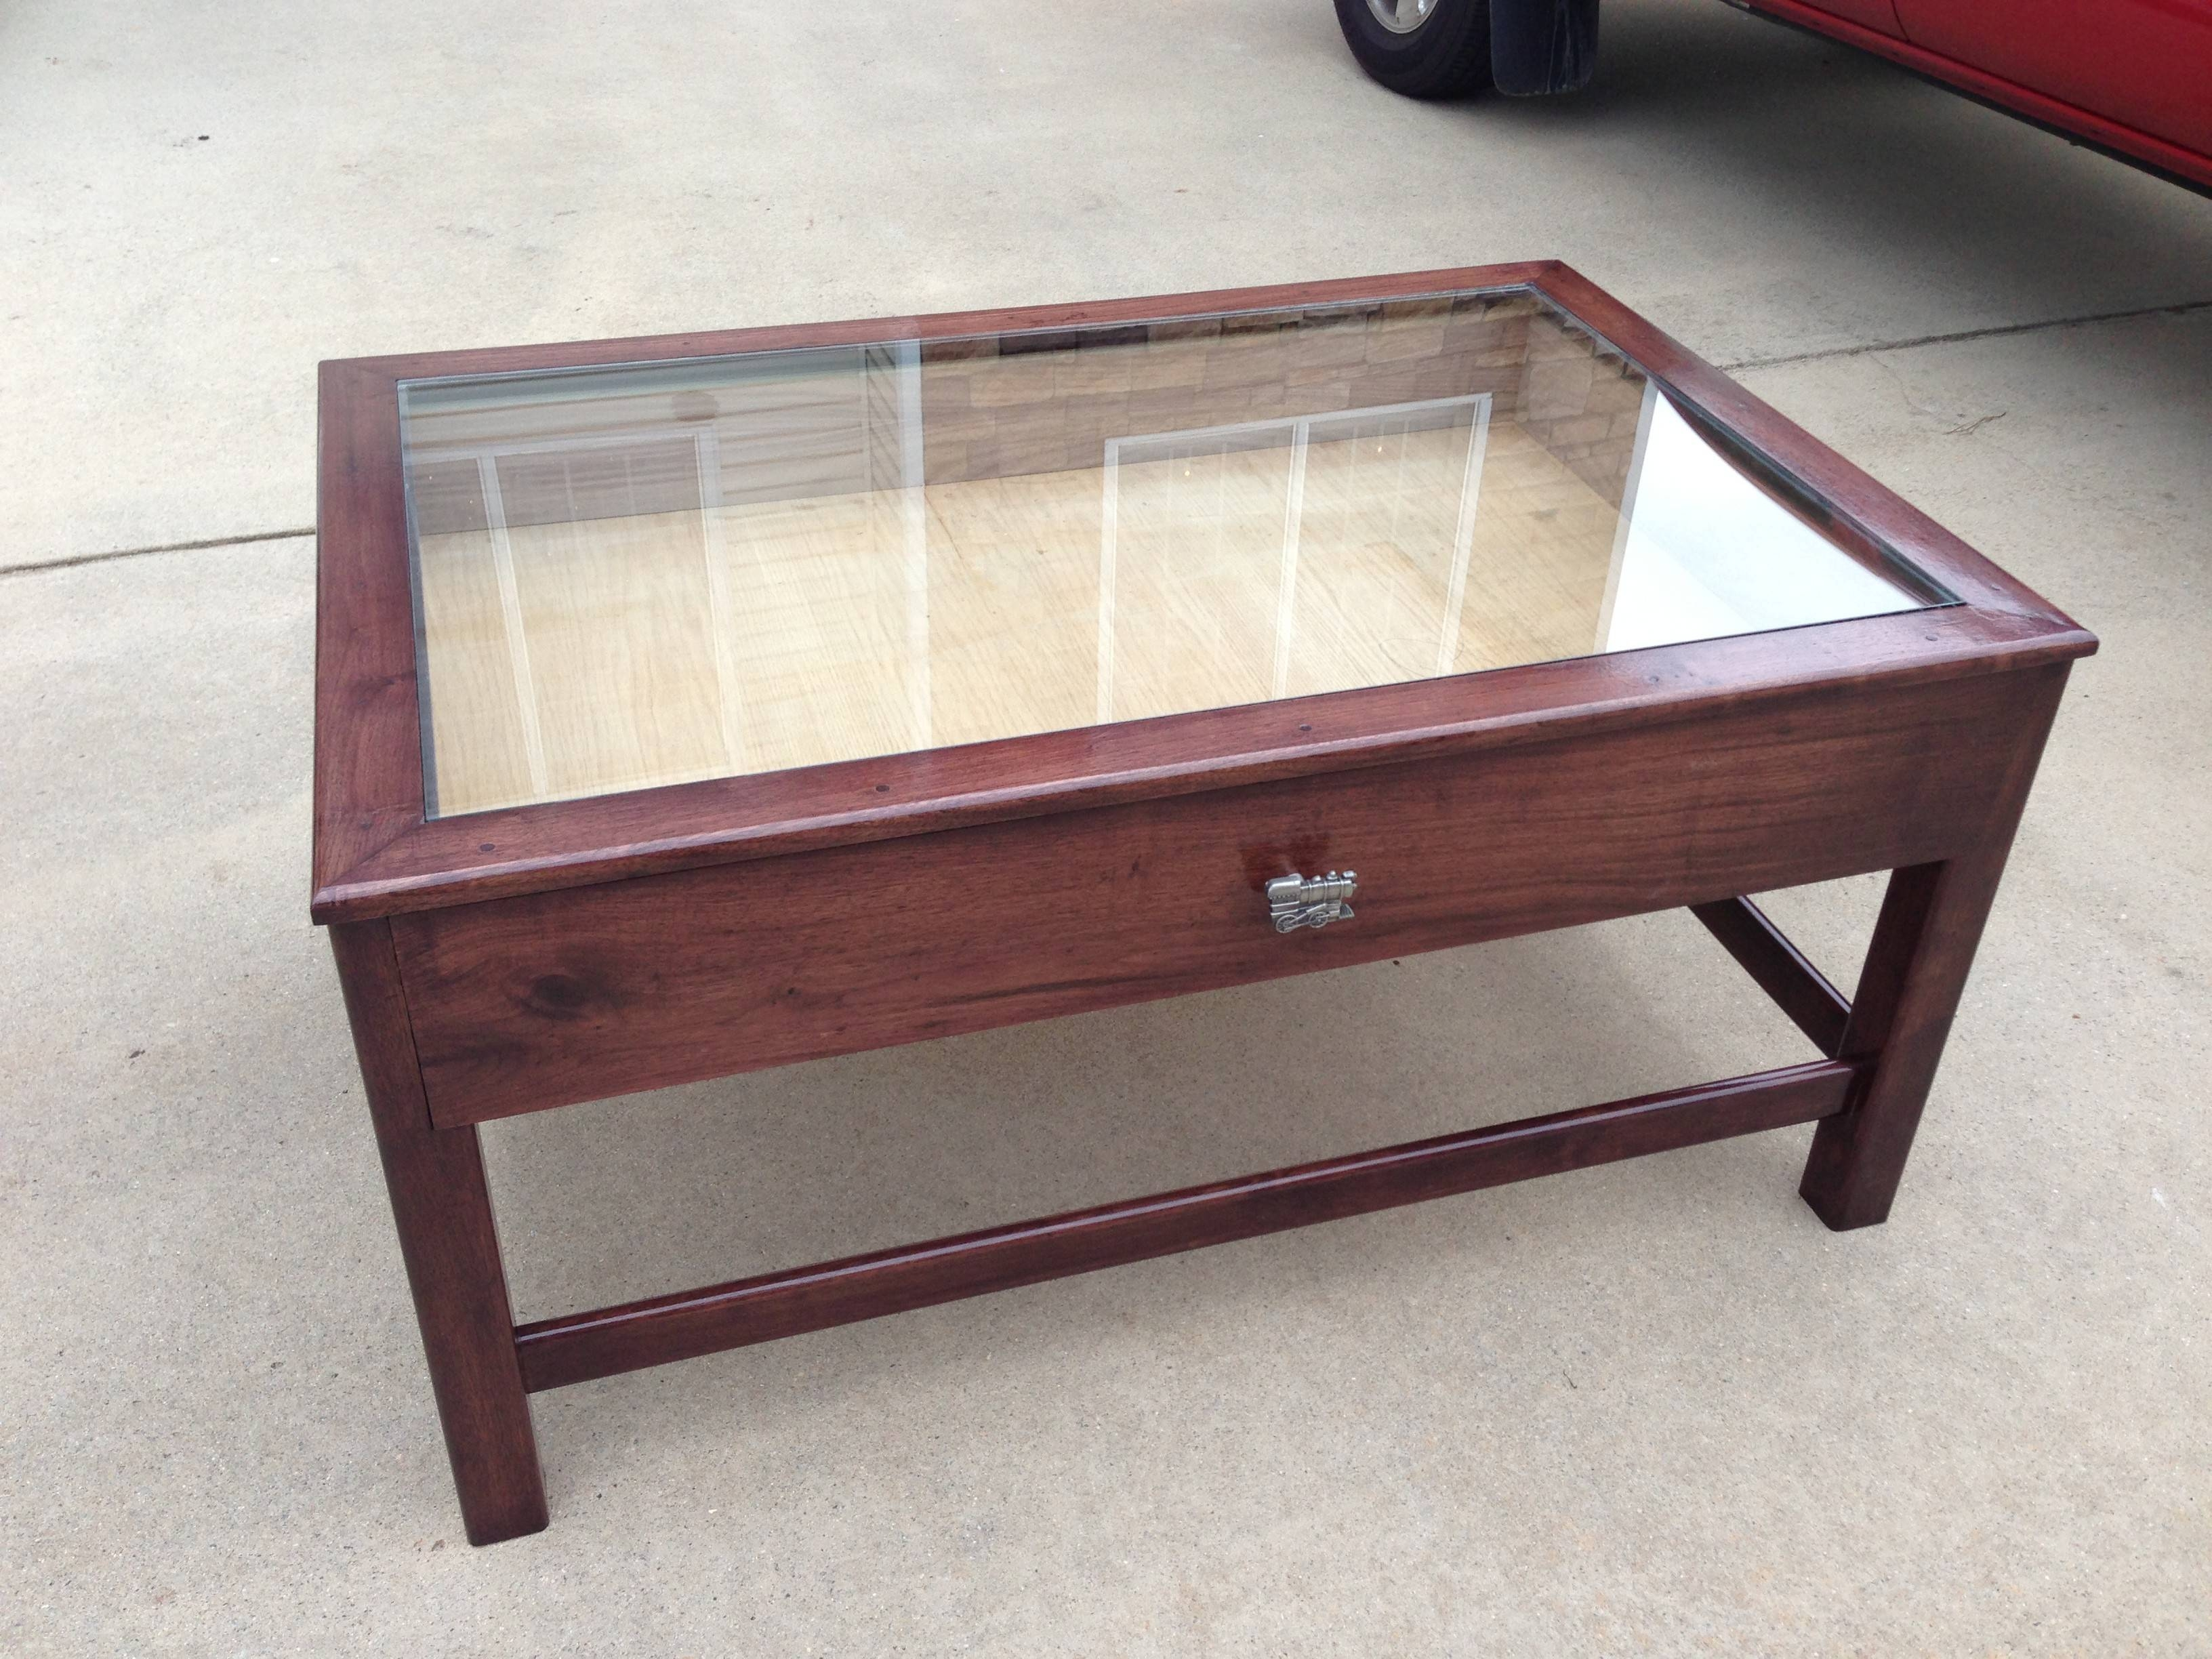 Coffee Table. Awesome Glass Top Display Coffee Table Designs regarding Coffee Tables With Glass Top Display Drawer (Image 17 of 30)